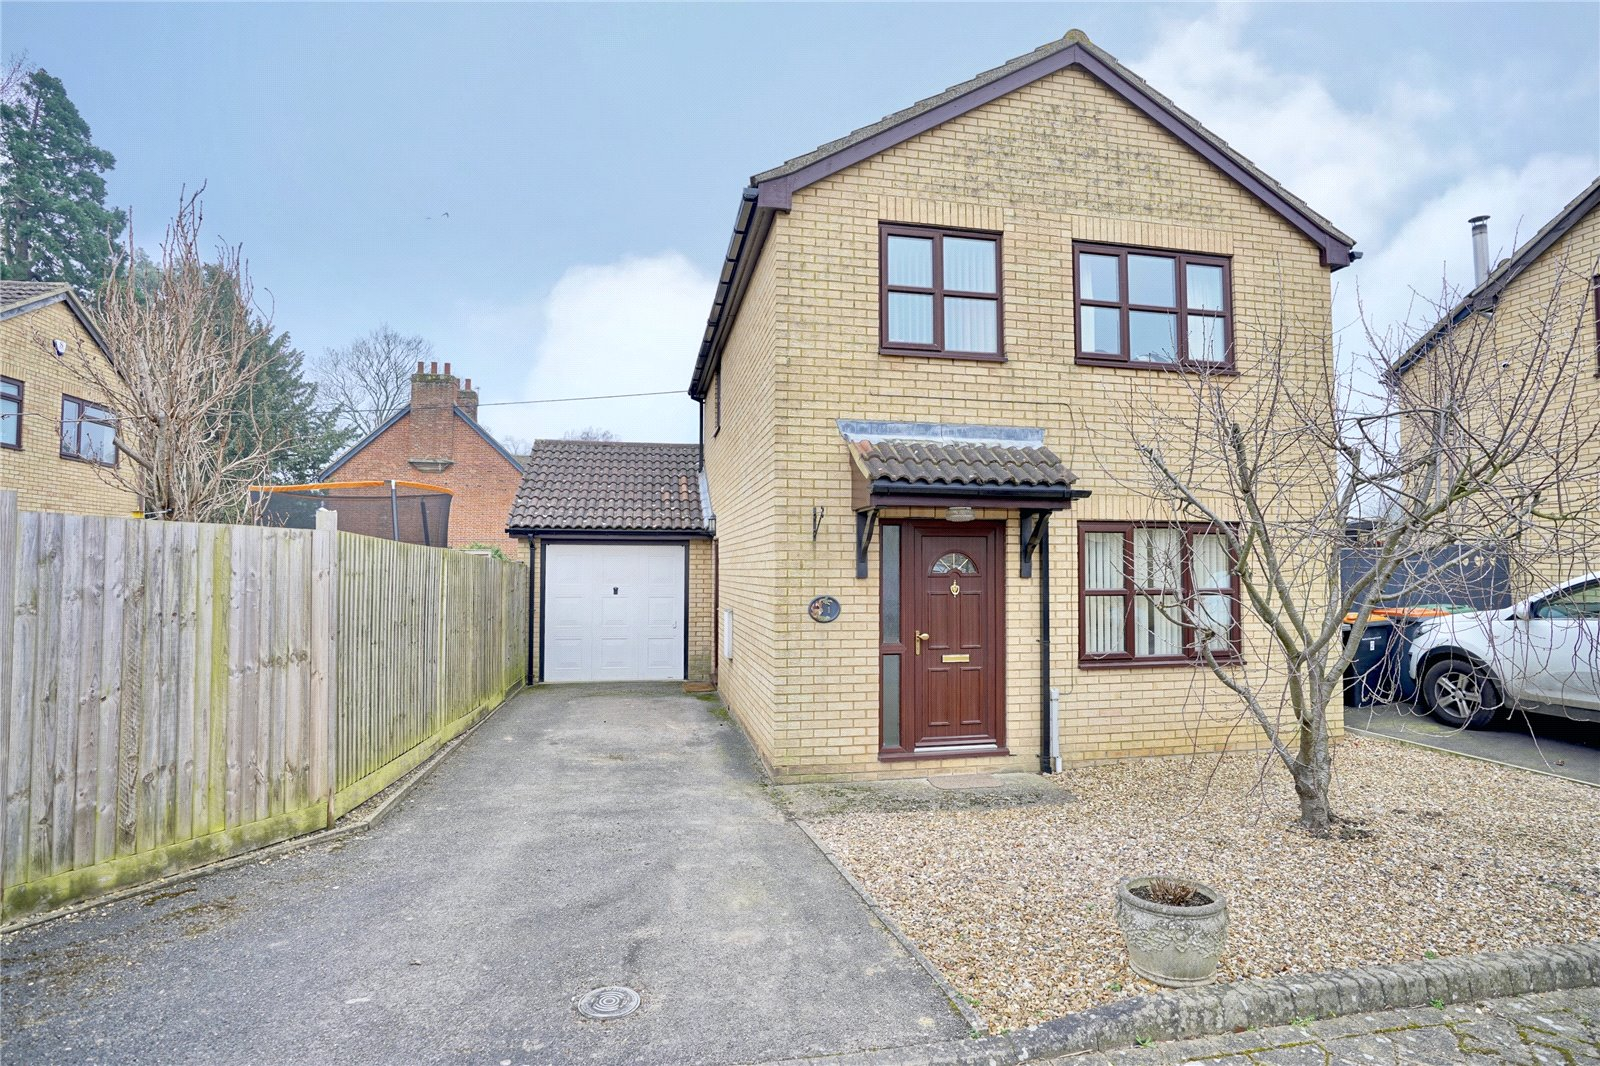 3 bed house for sale in Wyboston, MK44 3AG, MK44